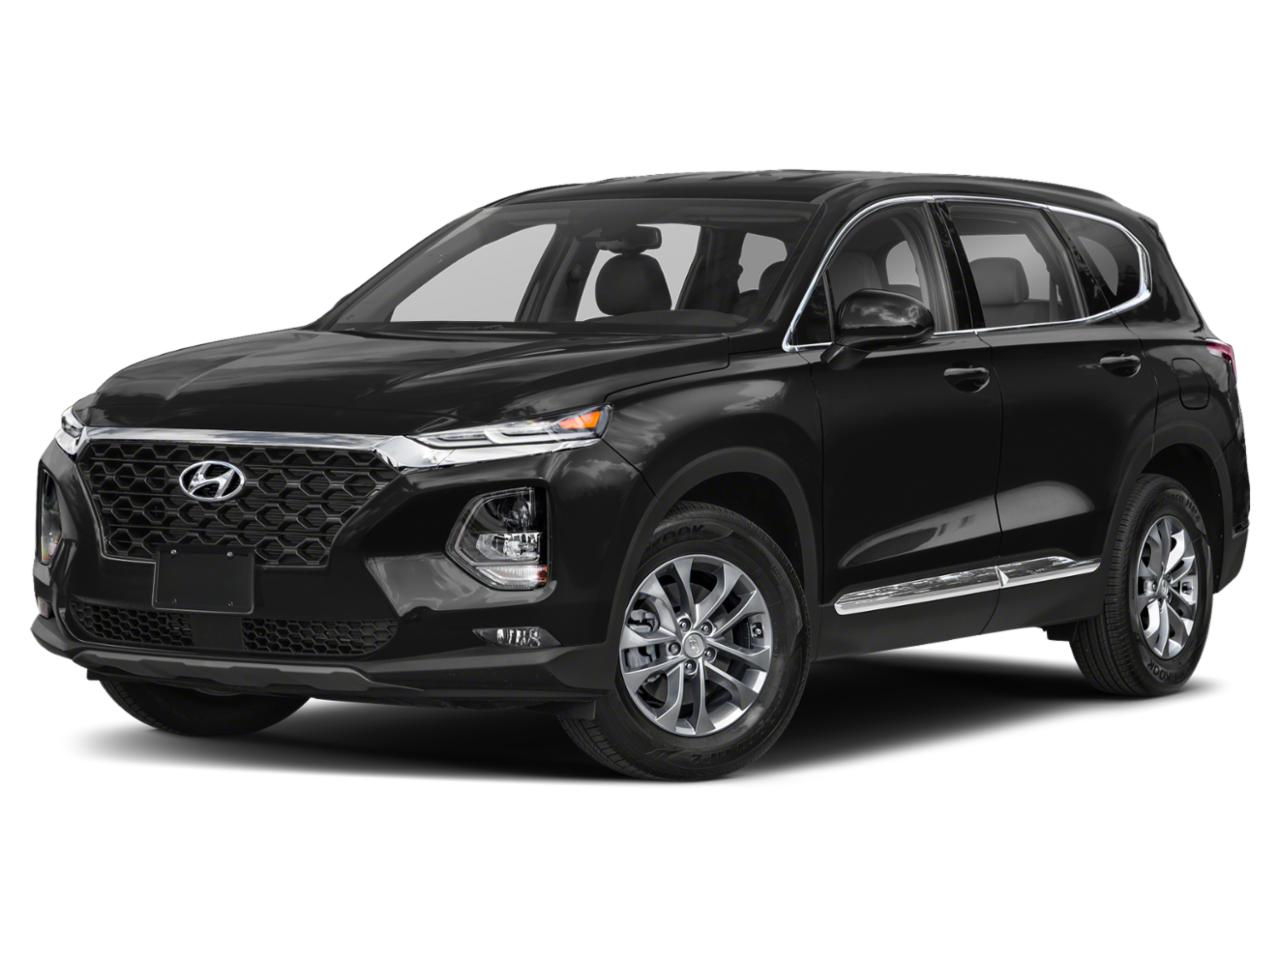 2020 Hyundai Santa Fe Vehicle Photo in Bowie, MD 20716